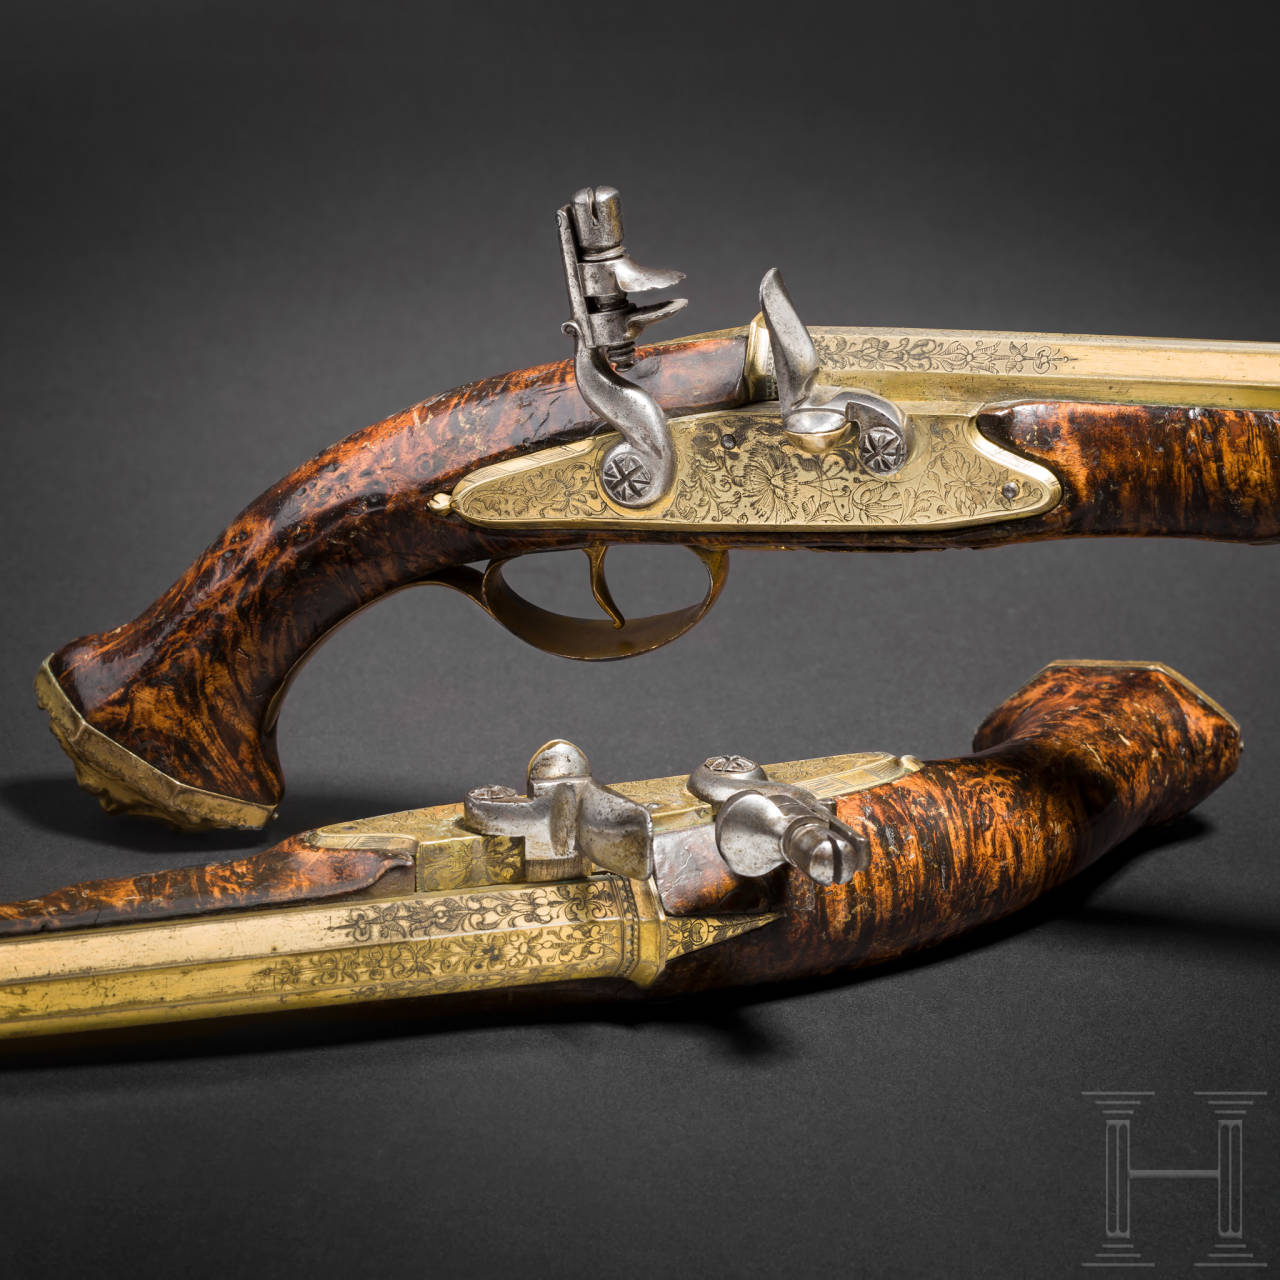 An extremely rare pair of flintlock pistols with brass barrels, Felix Werder, Zurich, circa 1660 and later